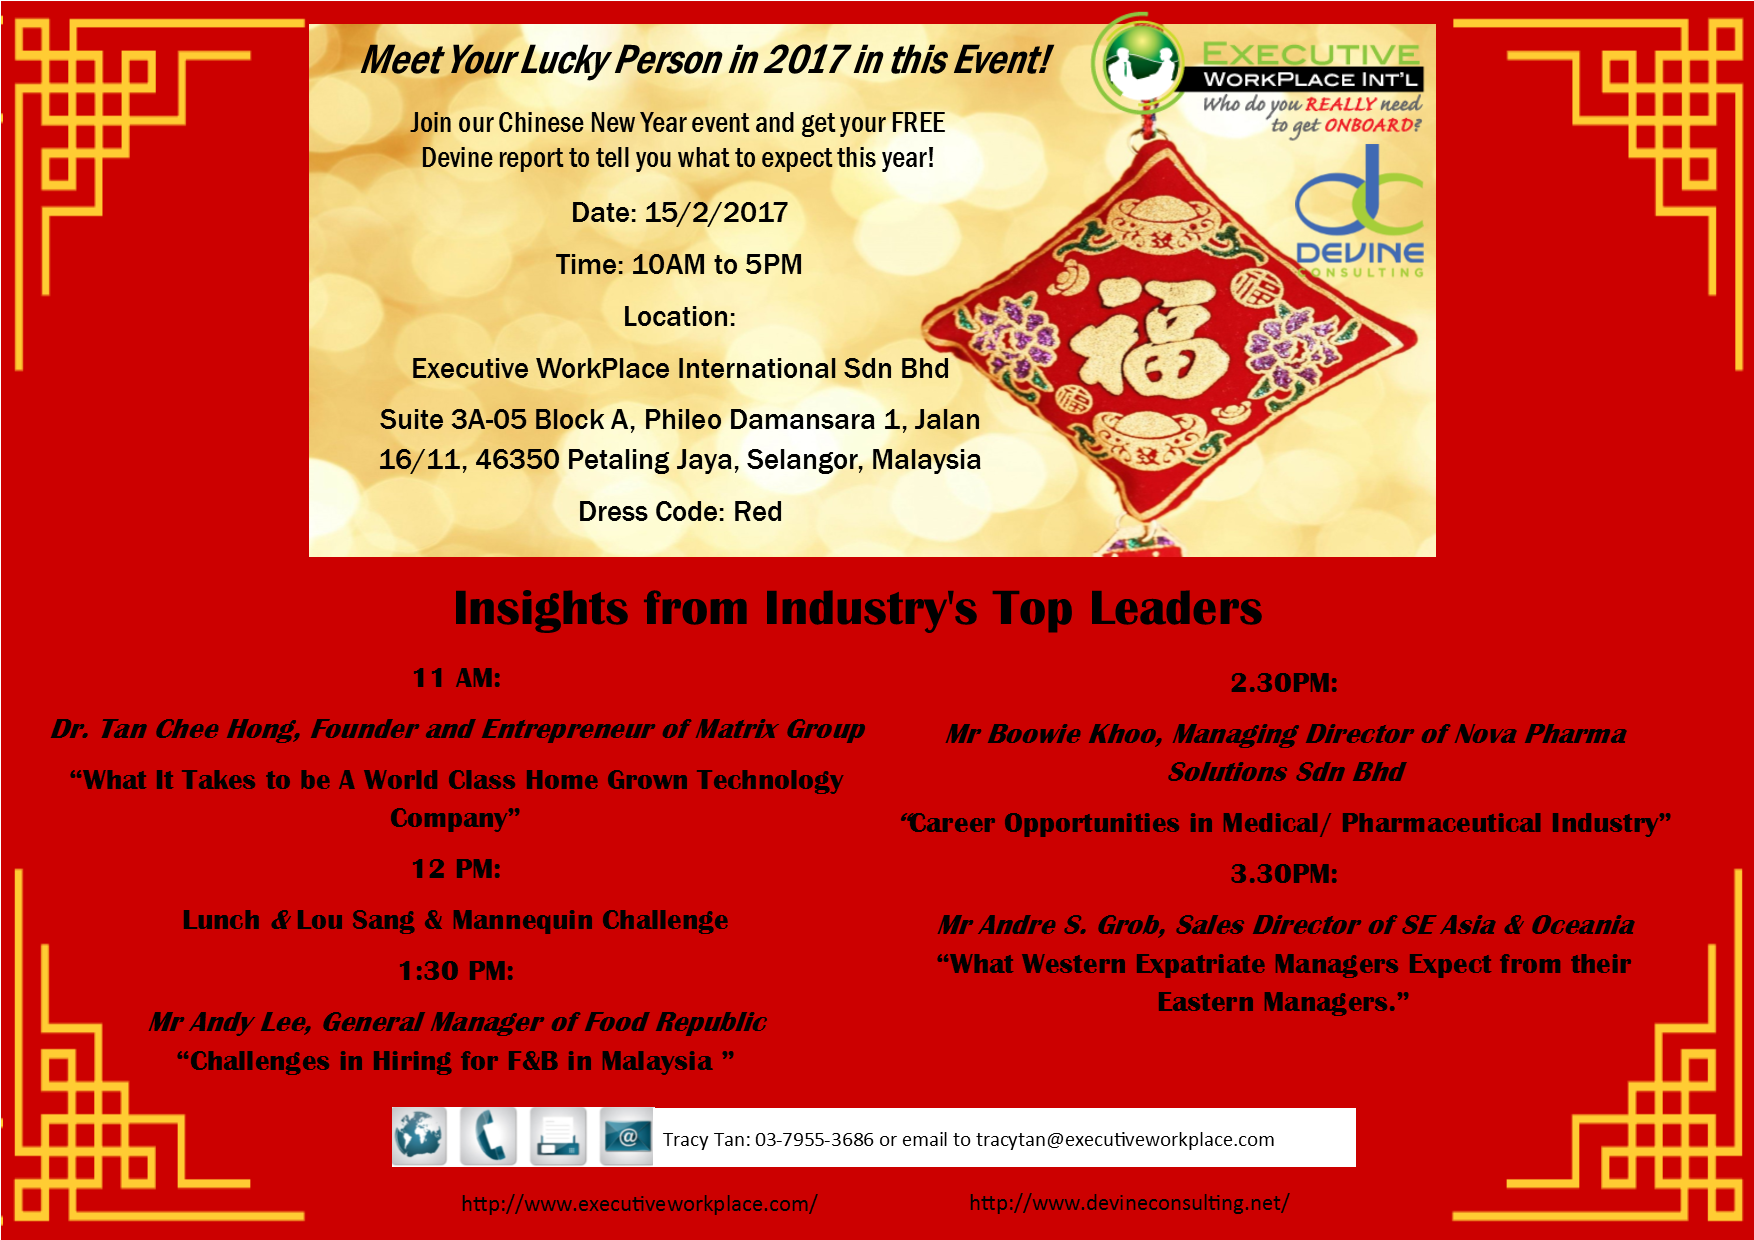 CNY E-Invitation & Event Itinerary